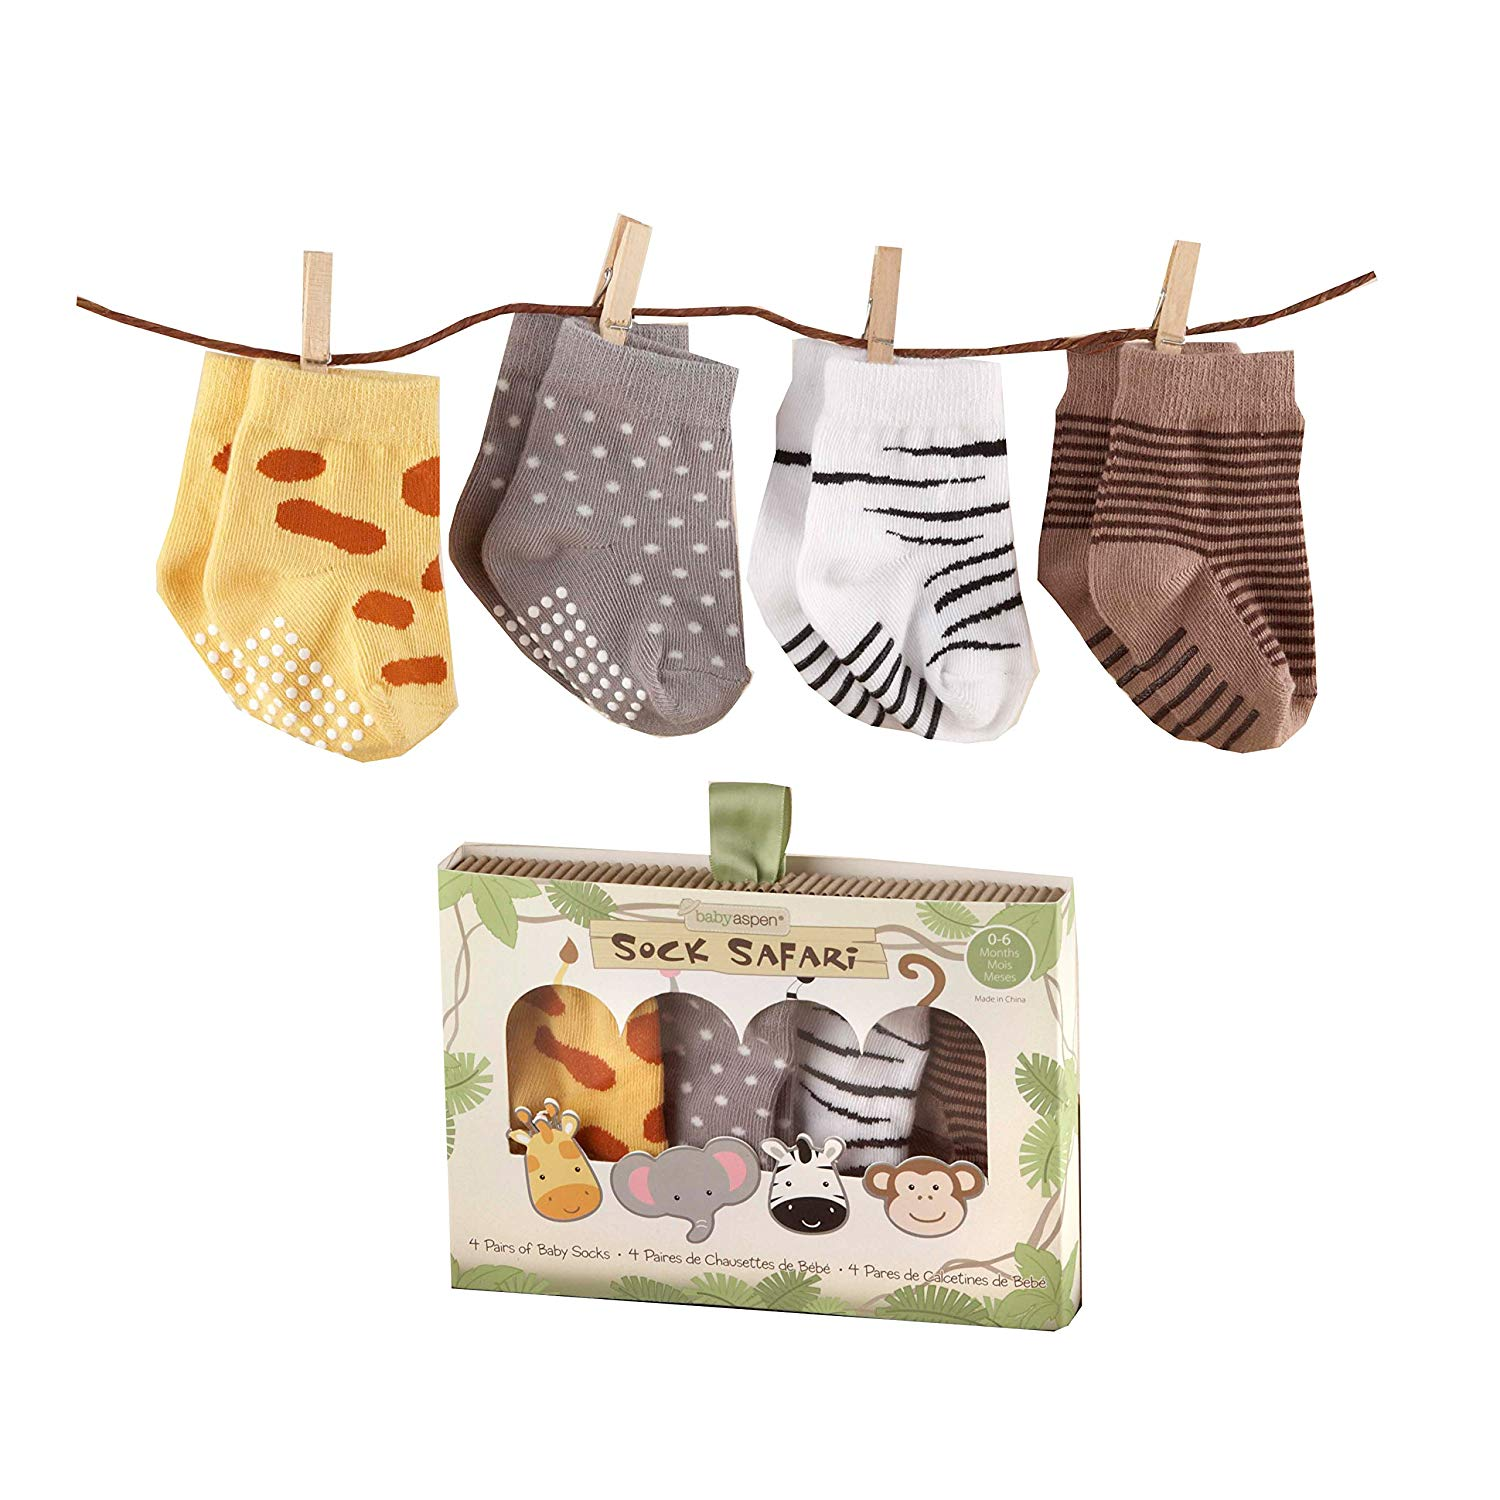 Baby Aspen, Sock Safari Four-Pair Animal-Themed Socks Set, 0-6 Months